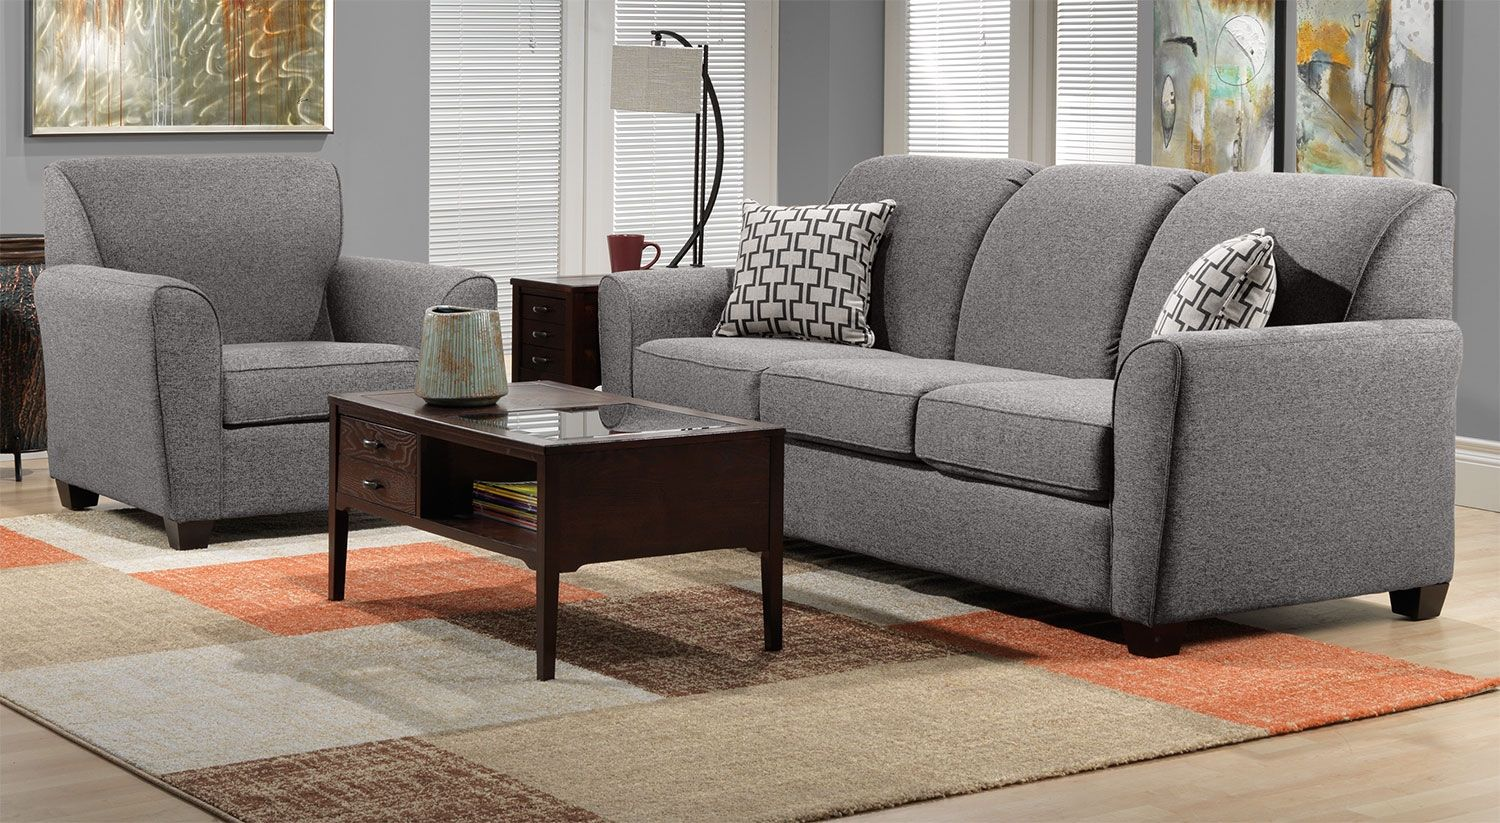 Pleasant Ashby Sofa Oreo Leons Sofa Shop Sofa Home Decor Gmtry Best Dining Table And Chair Ideas Images Gmtryco